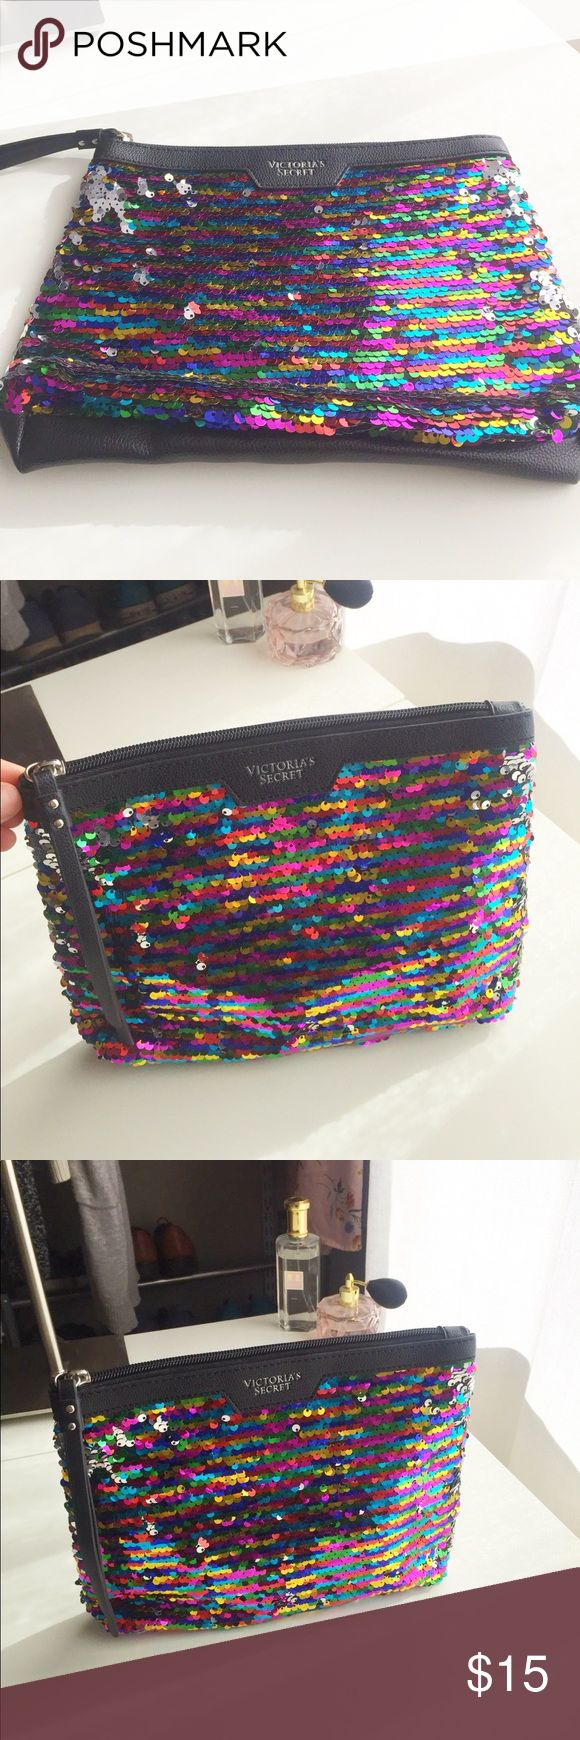 Victoria's Secret sequin clutch In excellent condition, barely used. Gorgeous multi coloured sequins which are silver coloured on the reverse side Victoria's Secret Bags Clutches & Wristlets